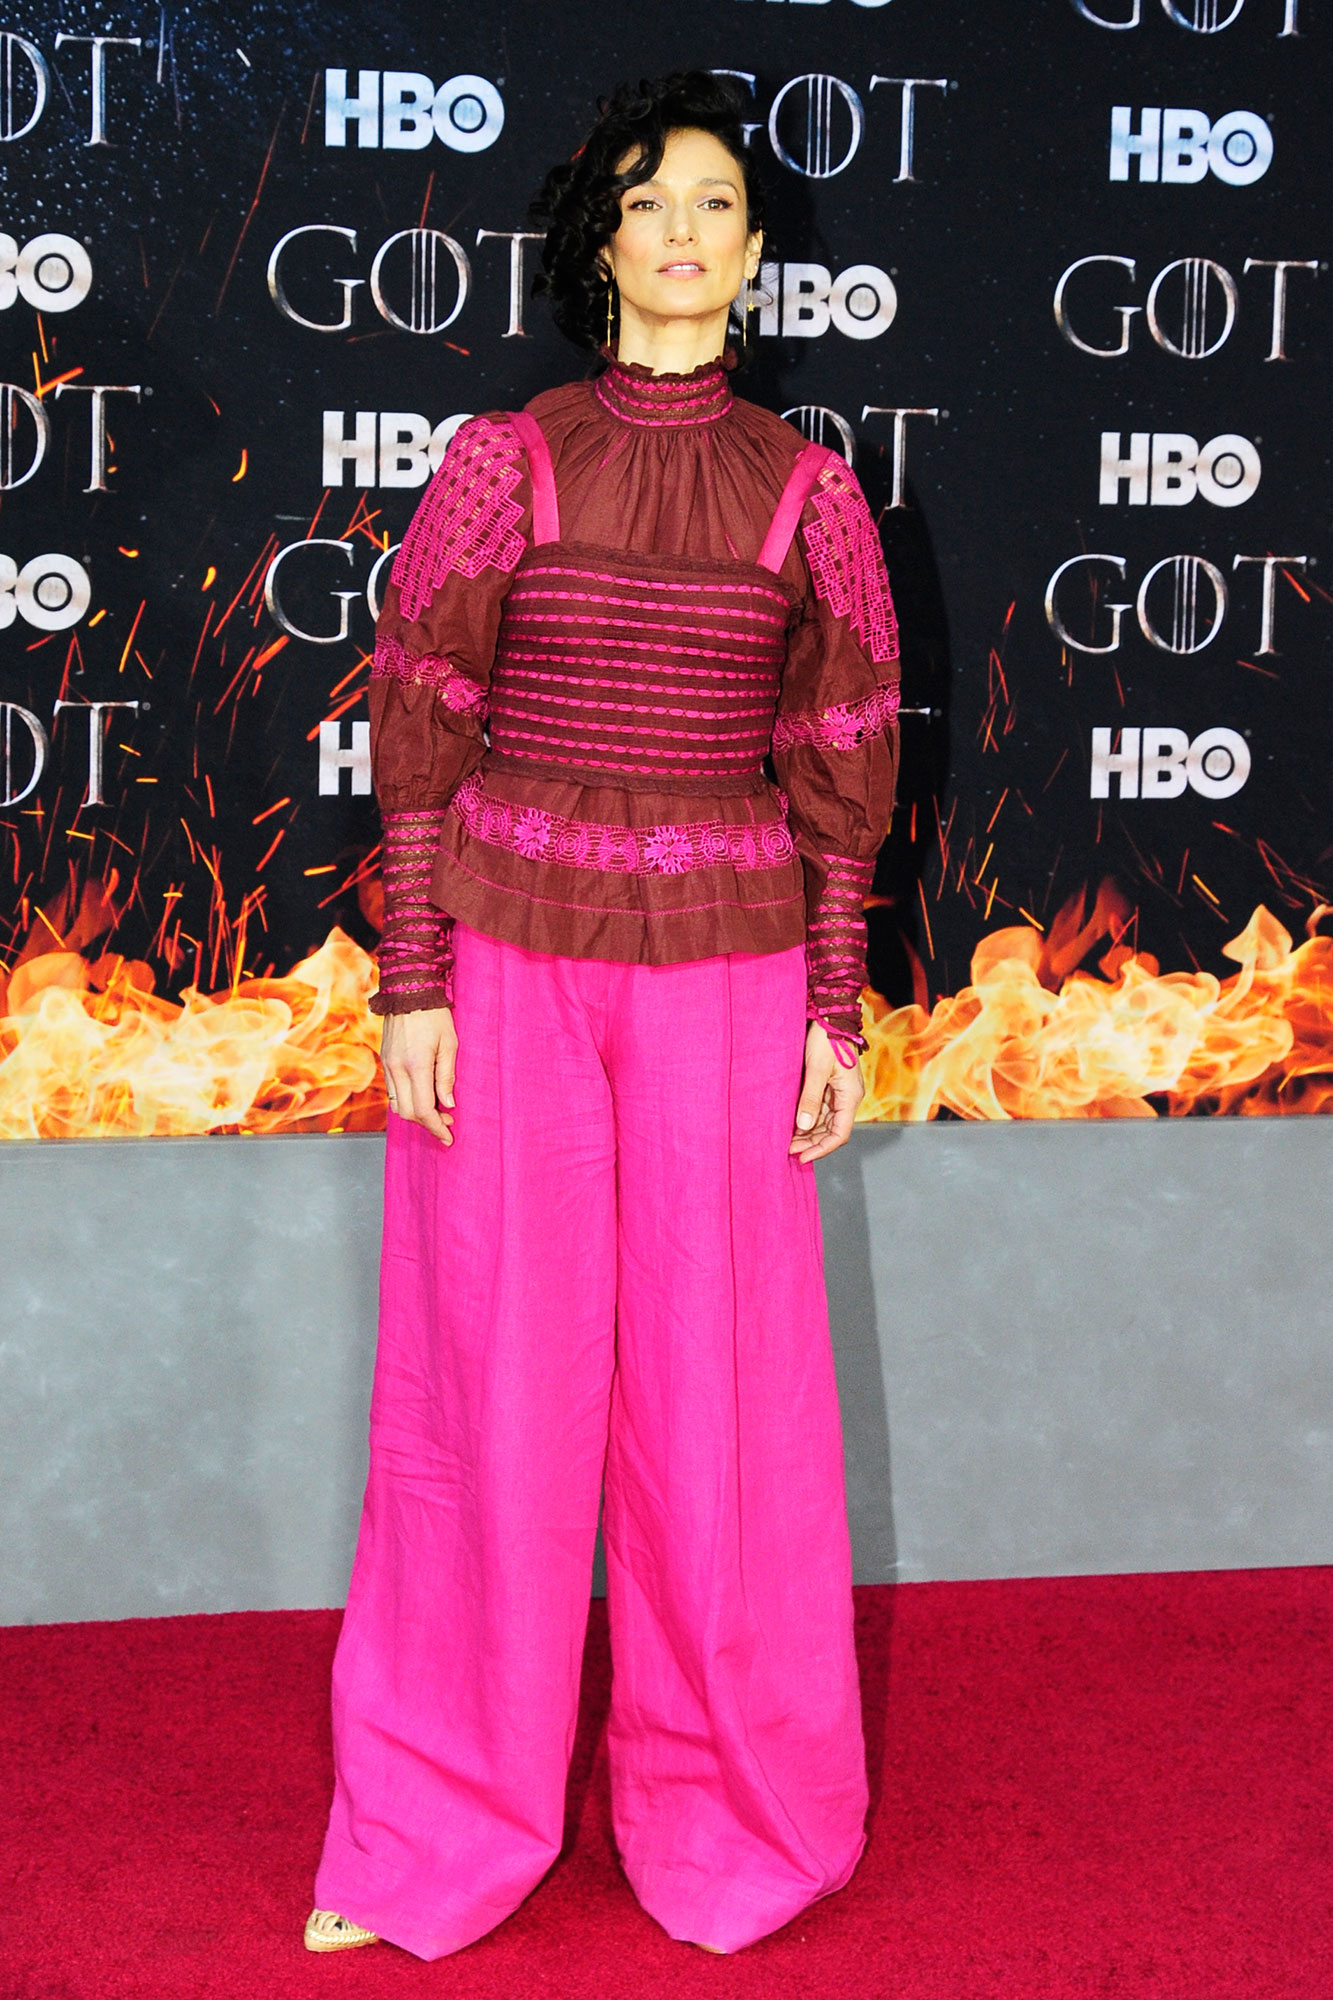 Indira Varma game of thrones - Wearing pink wide-leg trousers with a embroidered mock-neck blouse.